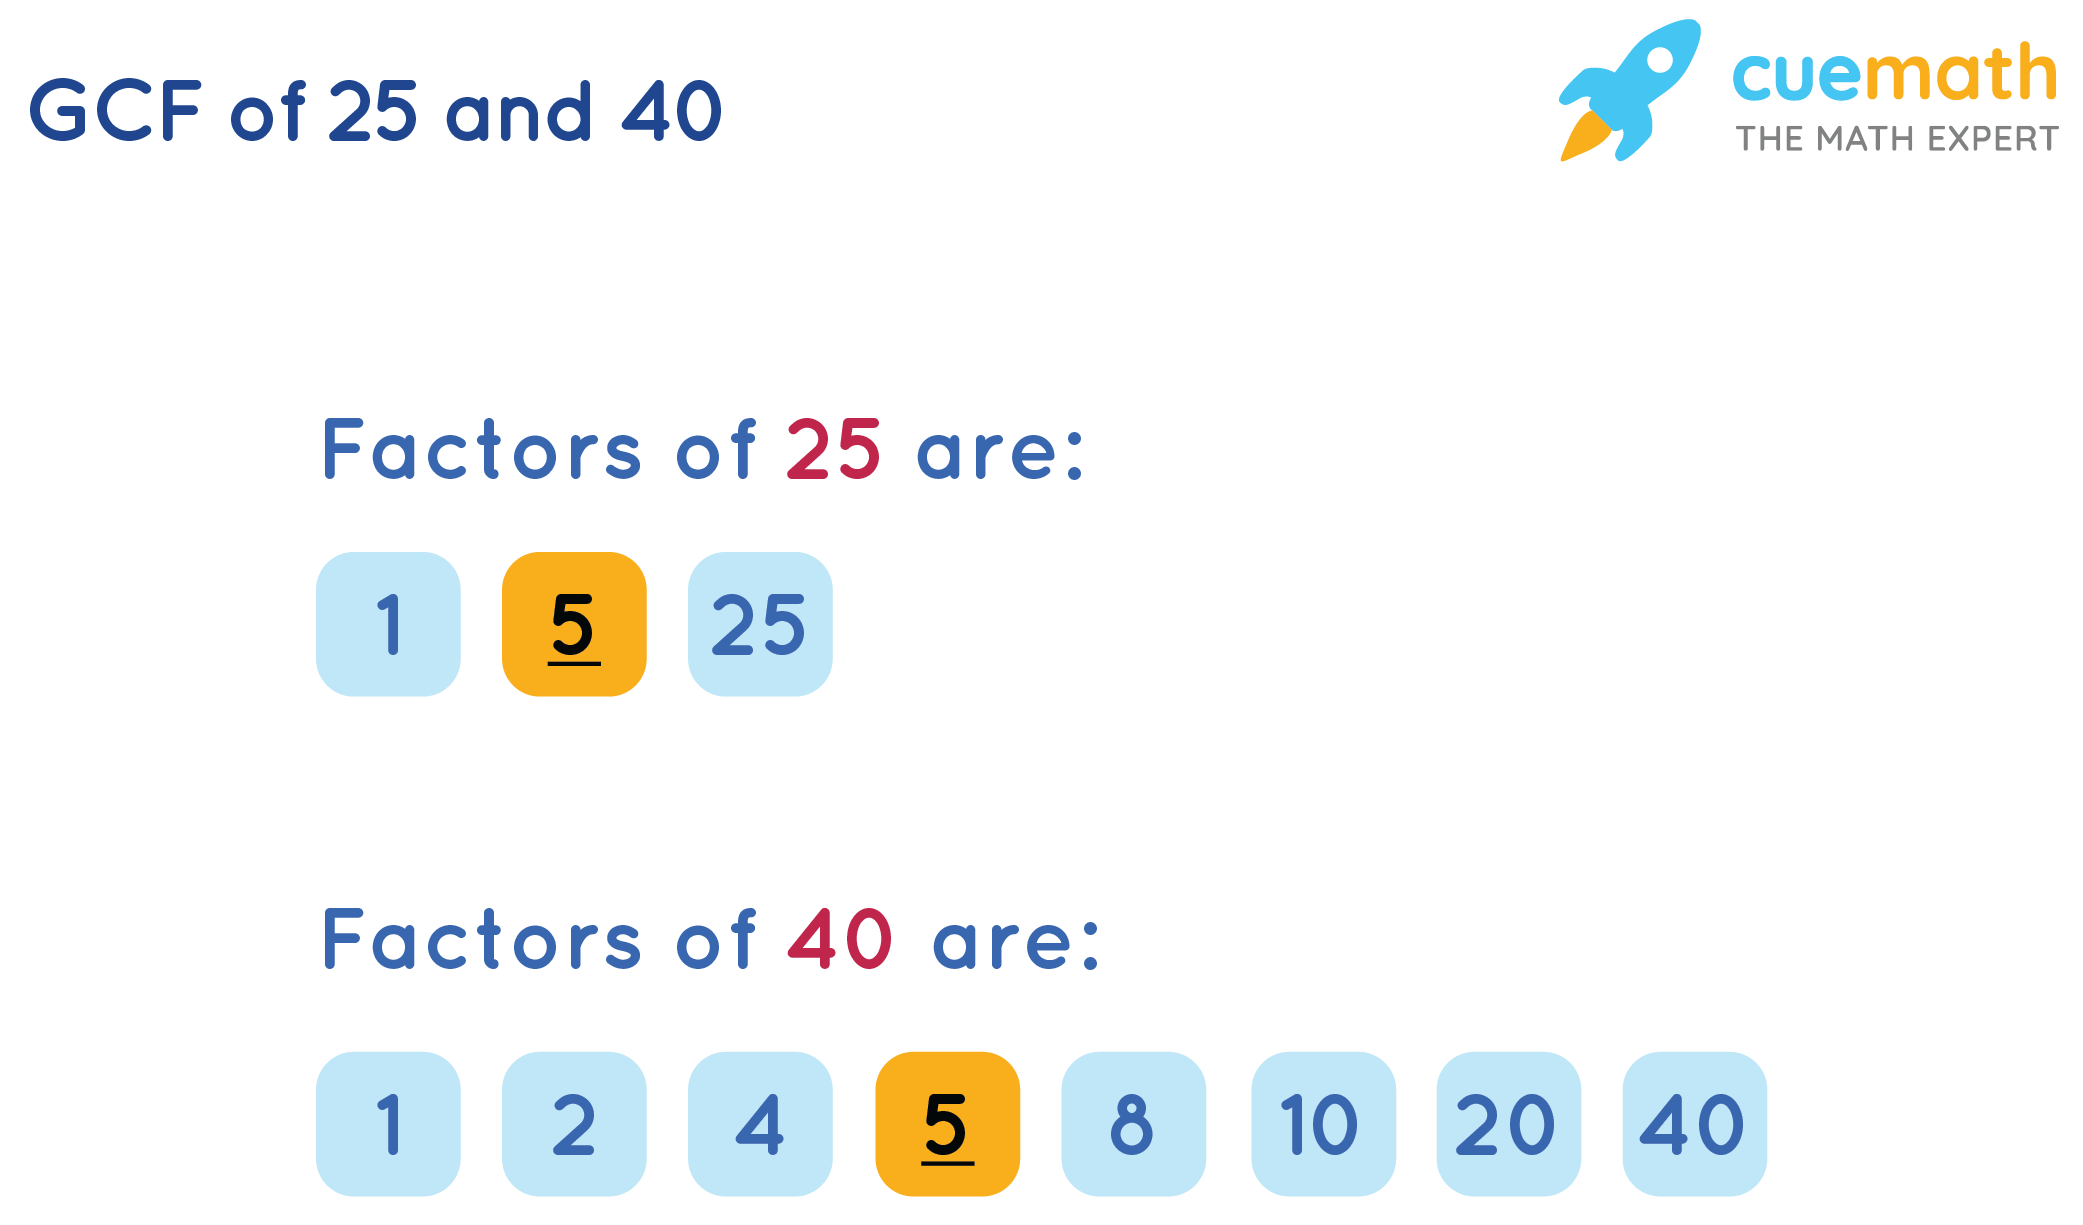 GCF of 25and 40by Listing the Common Factors